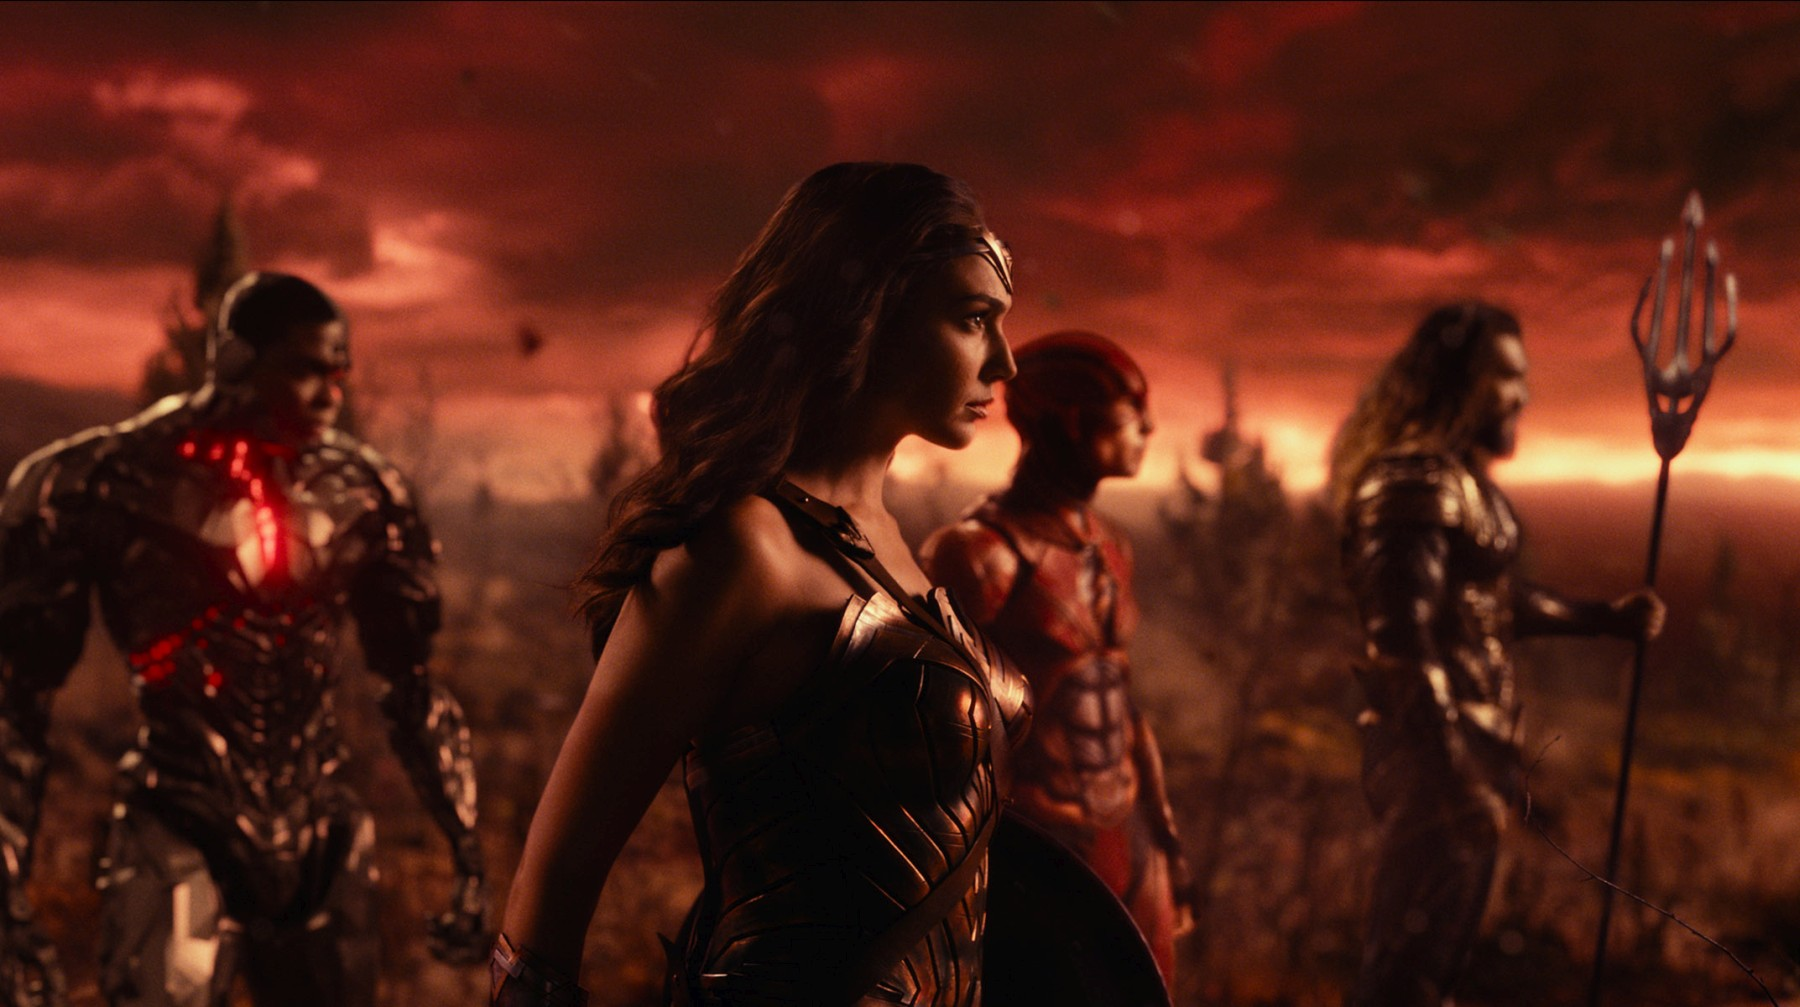 Justice League is Zack Snyder's vision says, Ben Affleck